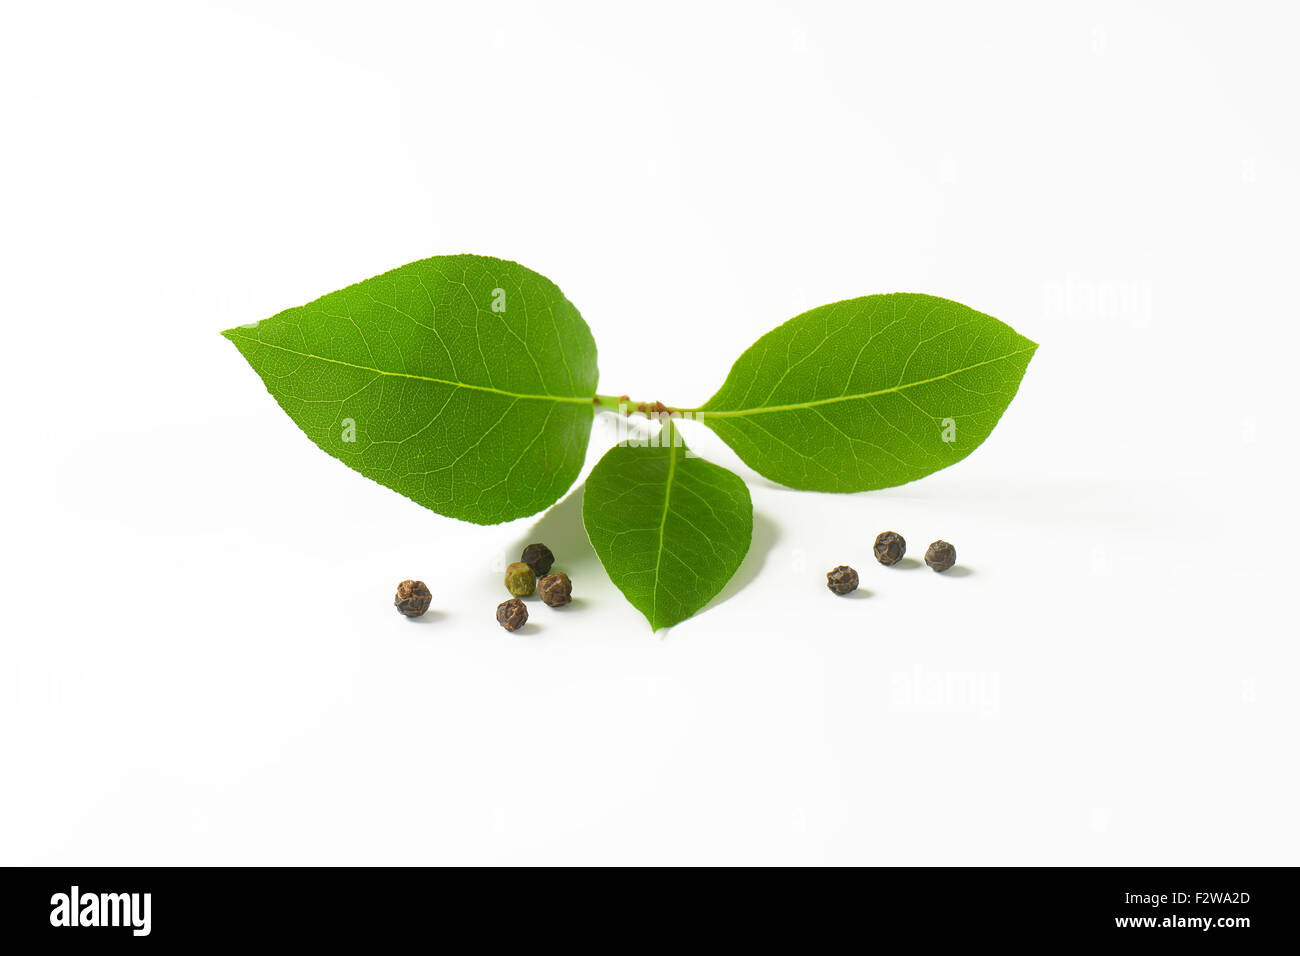 twig o fresh bay leaves and peppercorns on white background - Stock Image